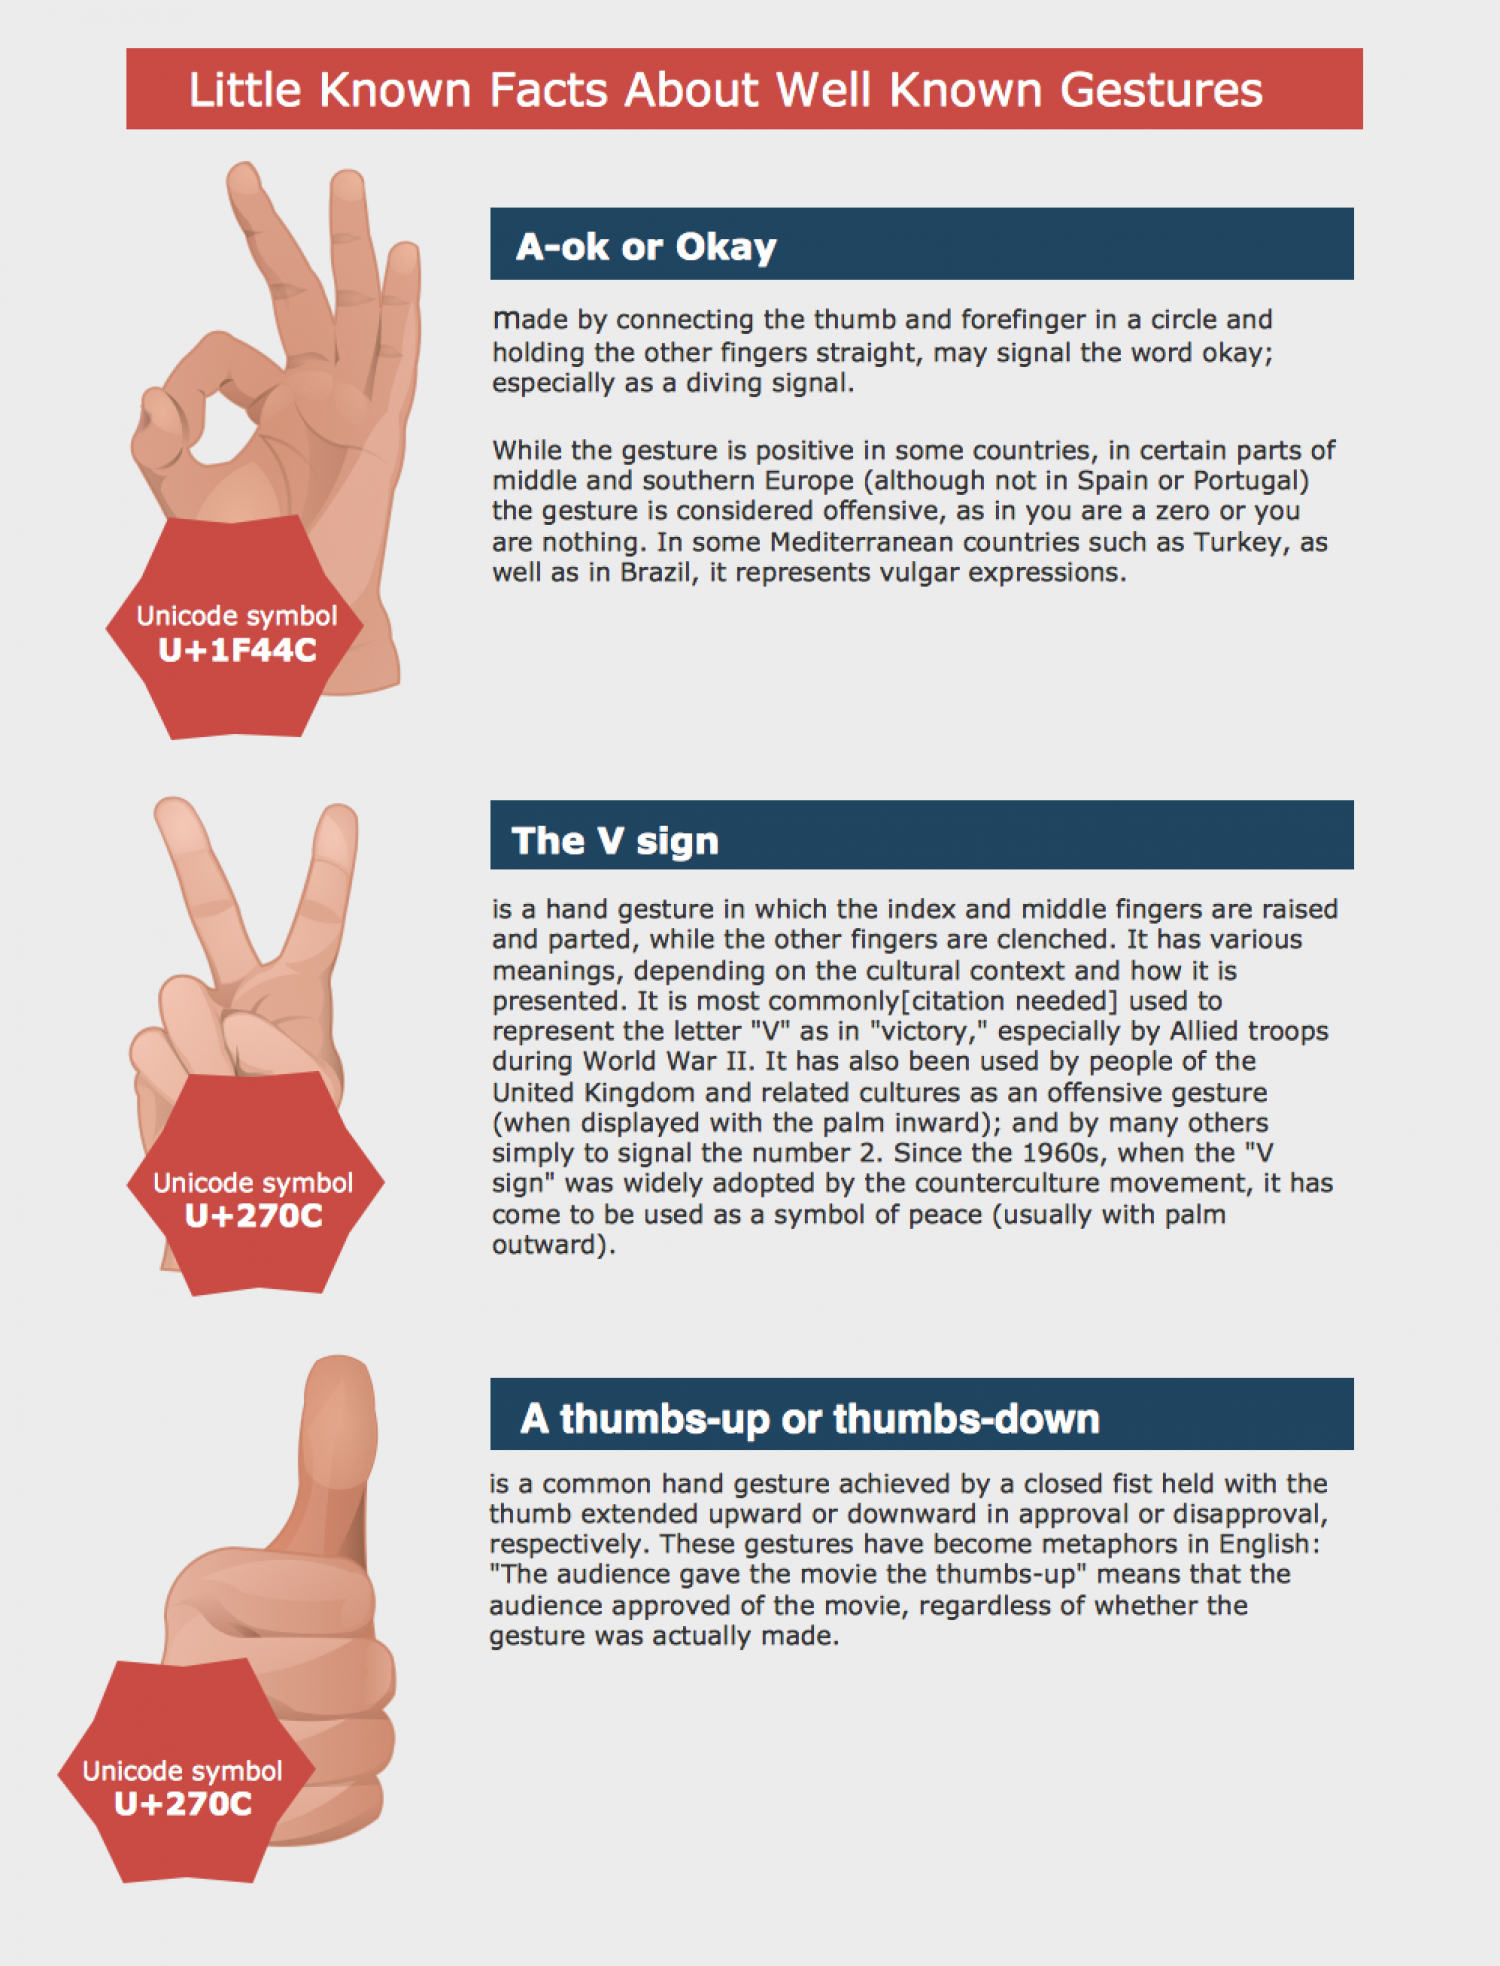 Little Known Facts About Well Known Gestures Infographic